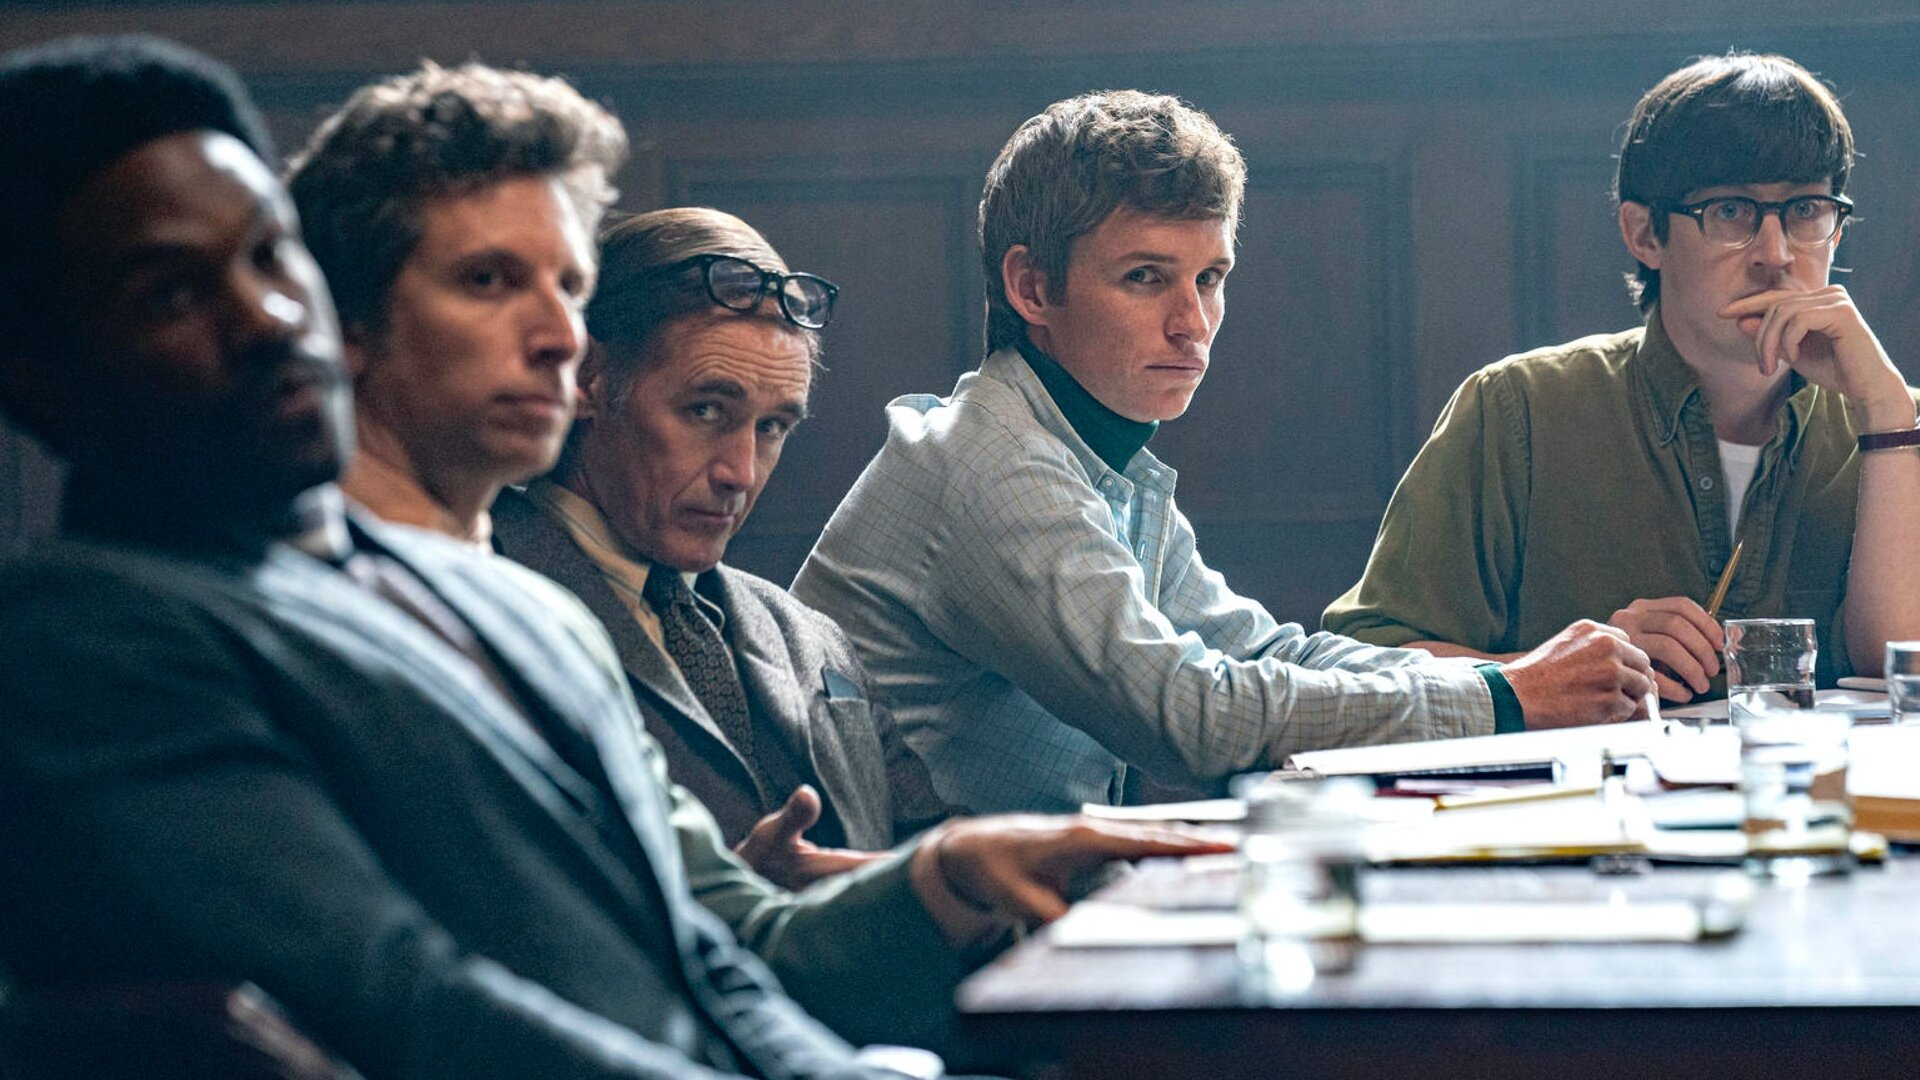 powerful-first-trailer-for-aaron-sorkins-true-drama-the-trial-of-the-chicago-7-coming-to-netflix-social.jpg